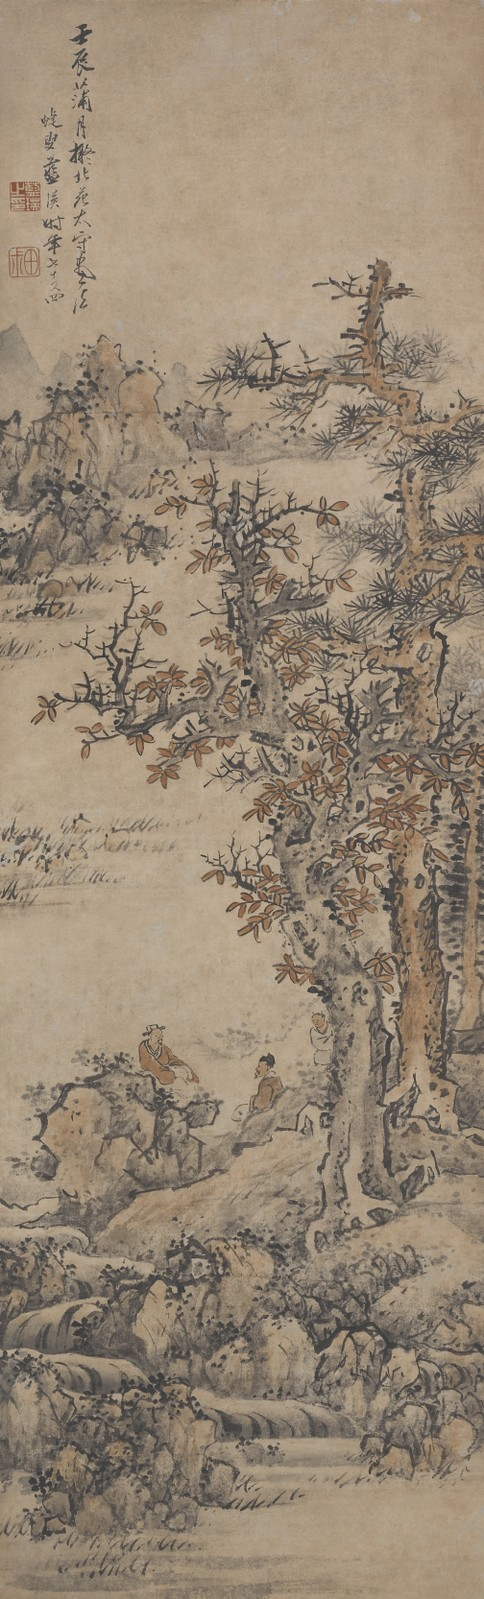 Landscape after Dong Yuan - Lan Ying - WikiArt.org ...